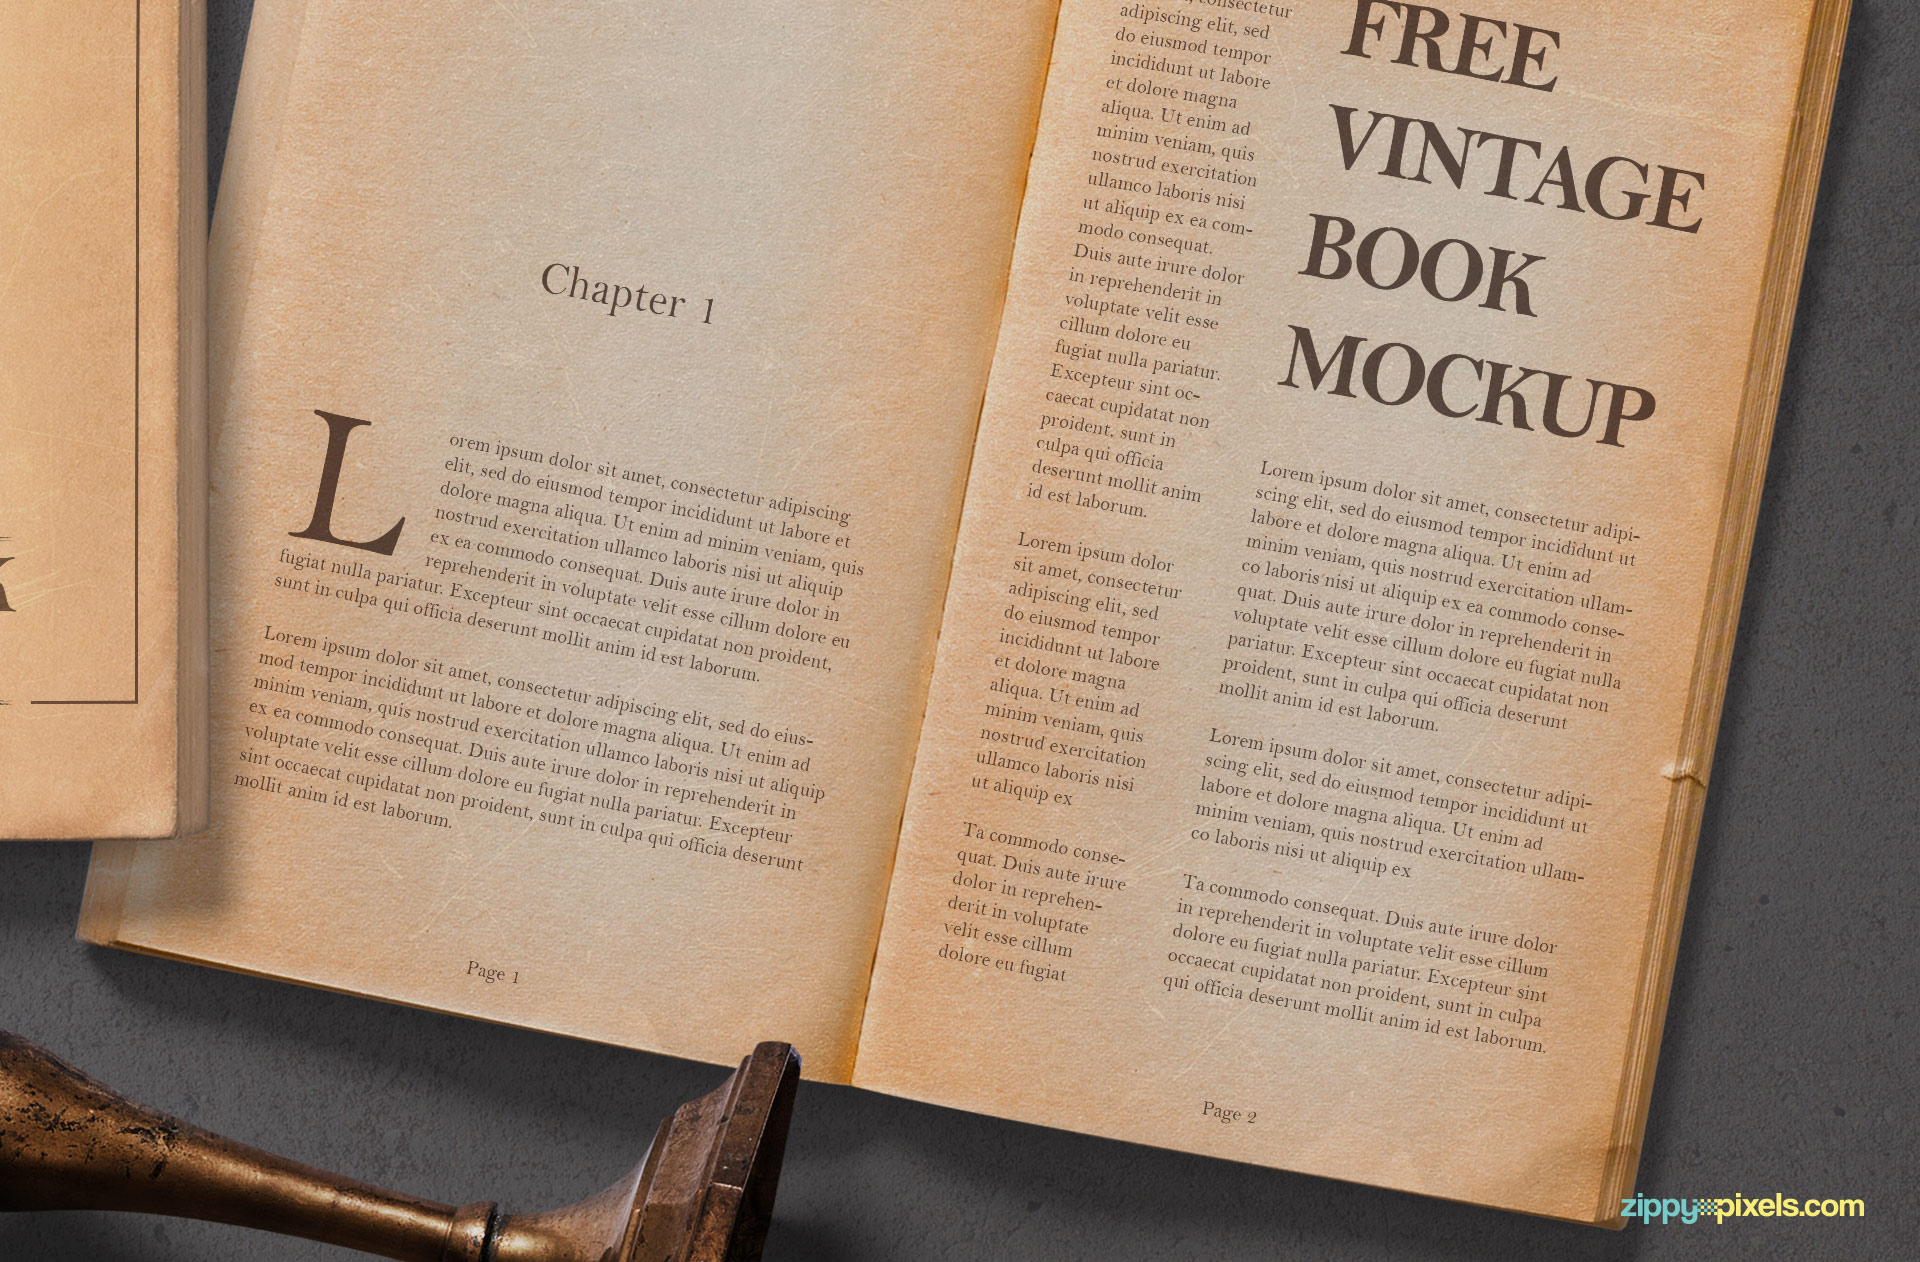 Open book mockup with vintage effect.